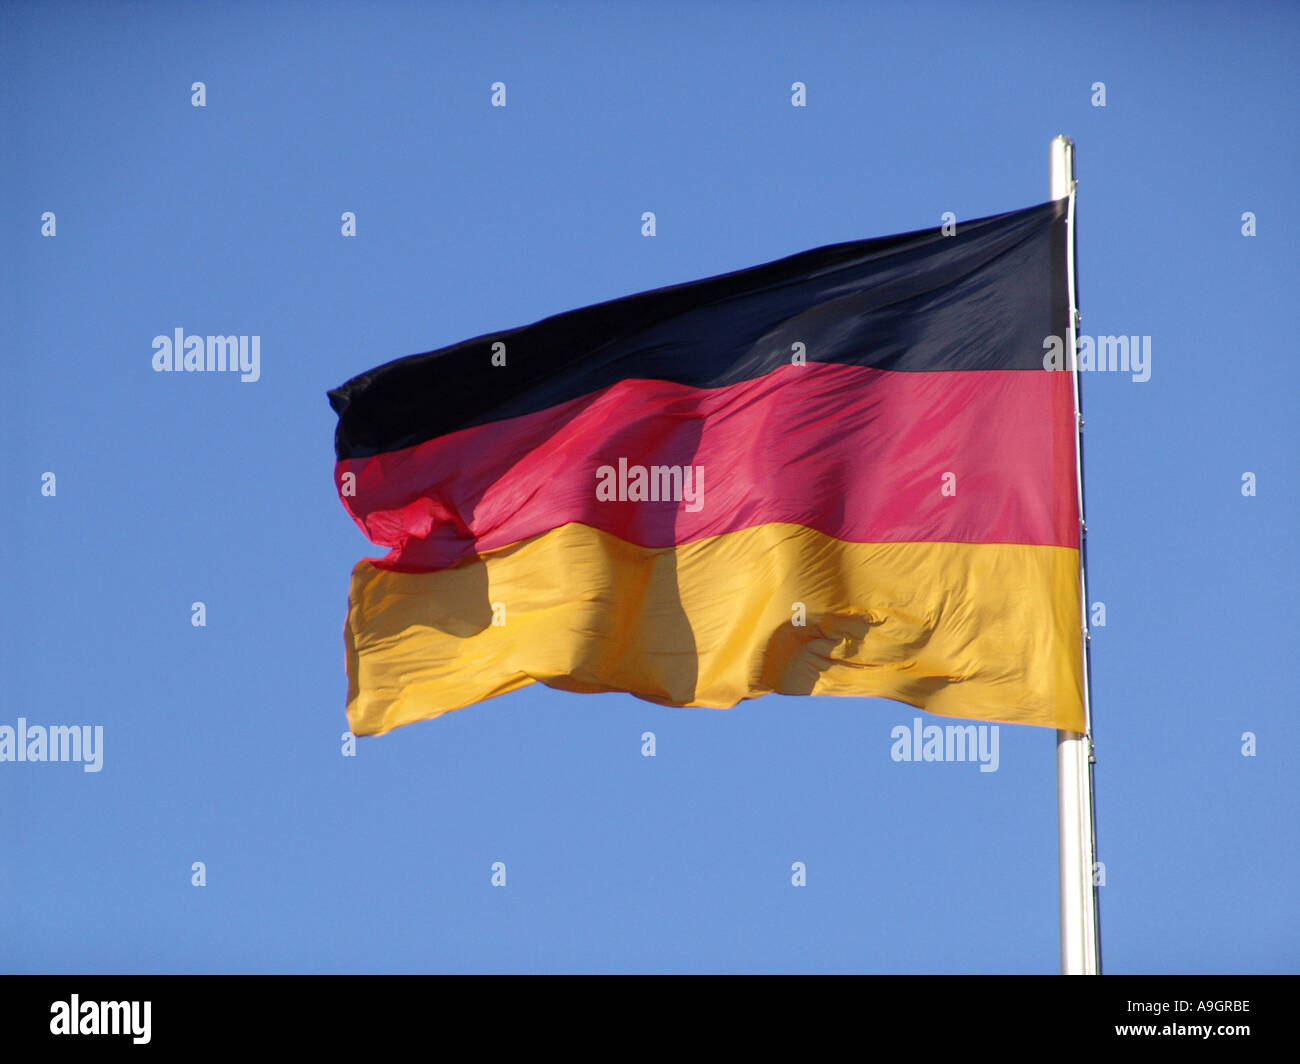 german flag, with blue sky behind, Germany, Berlin, Feb 04. - Stock Image